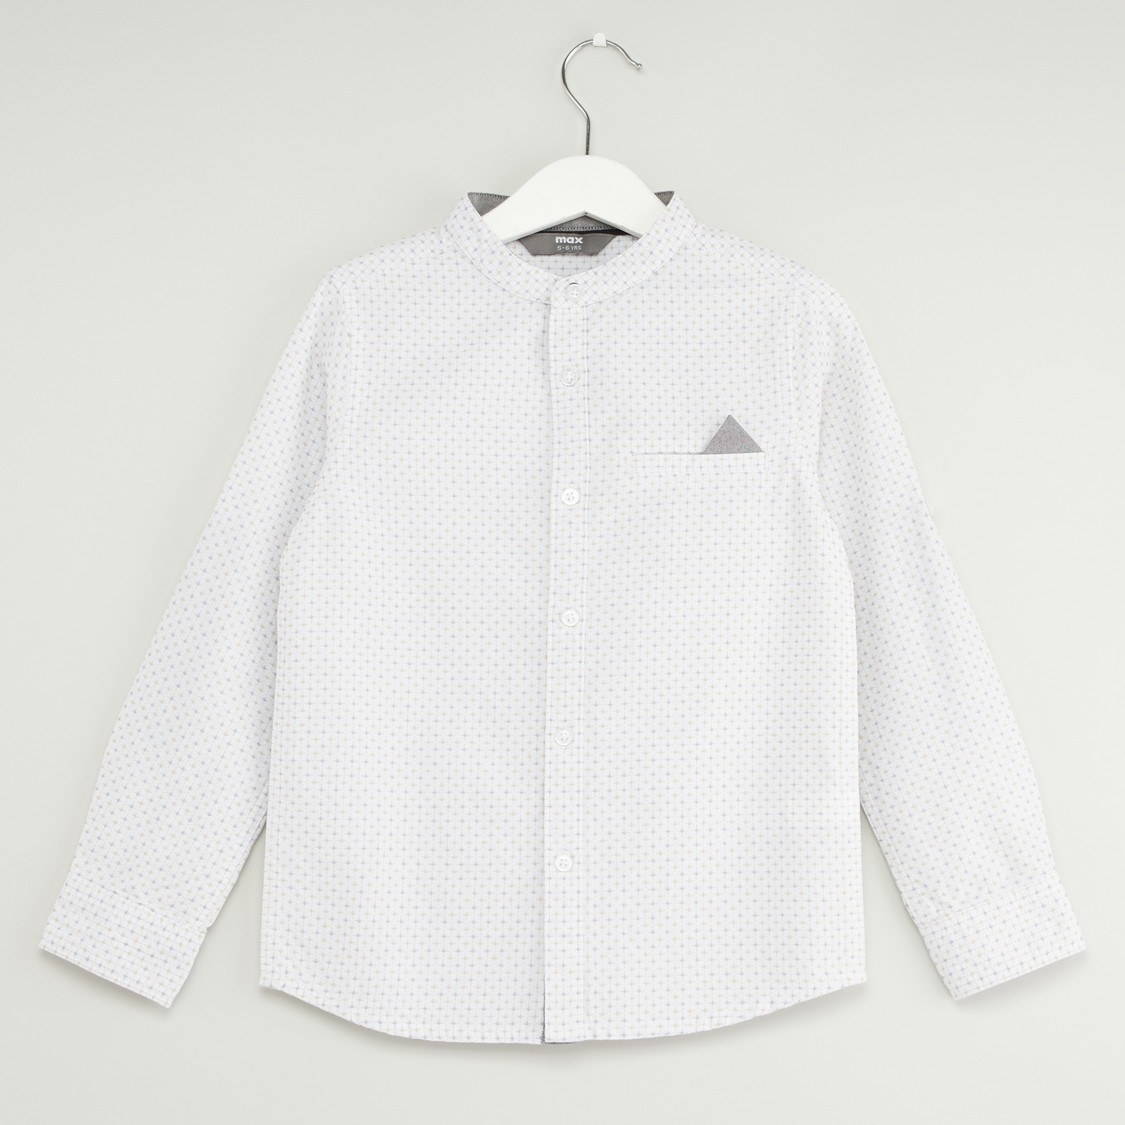 Printed Button-Down Shirt with Mandarin Collar and Long Sleeves